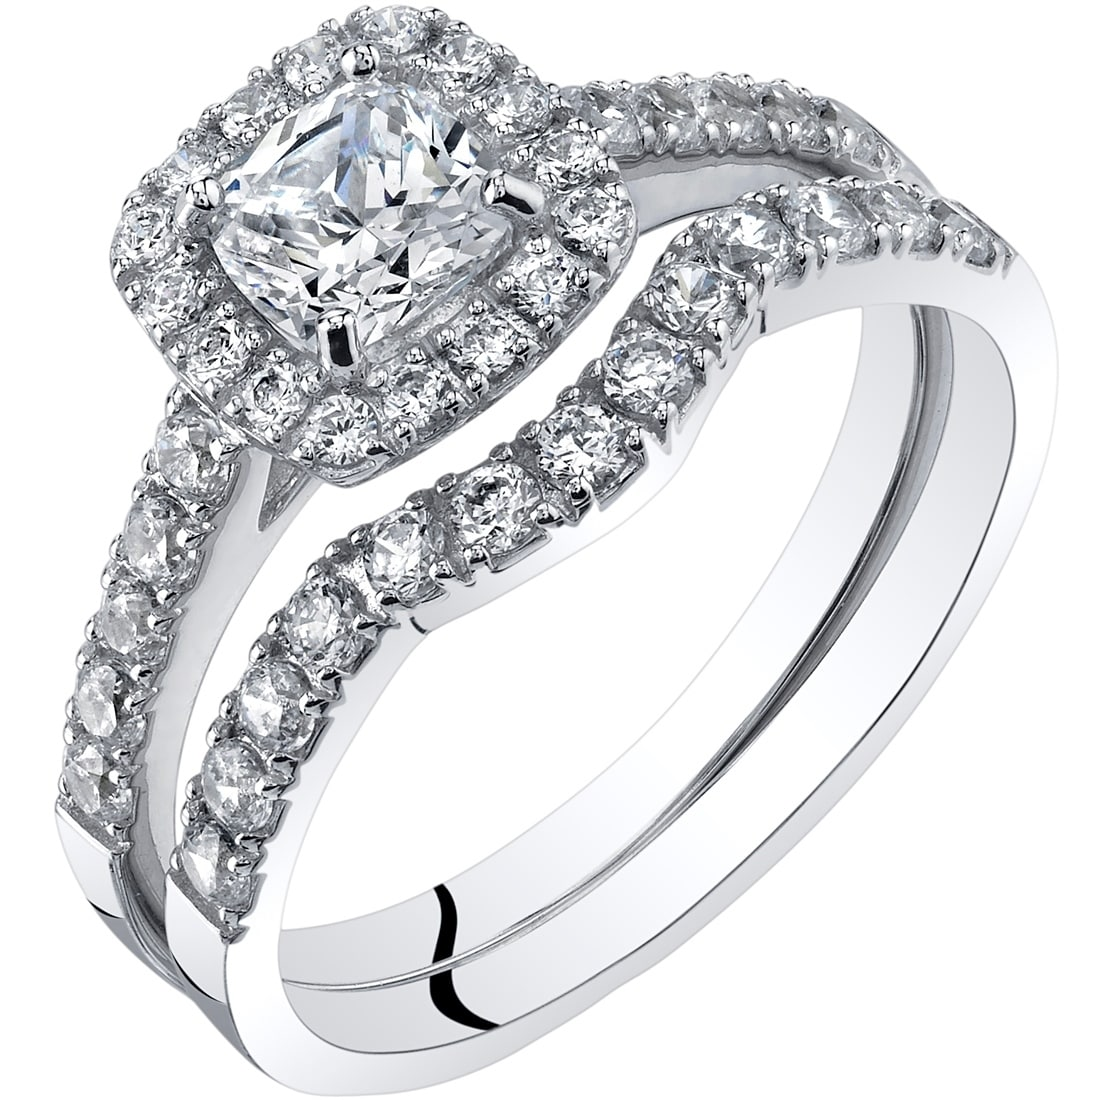 14k White Gold Cubic Zirconia Engagement Ring Wedding And Band Bridal Set On Sale Overstock 30951127